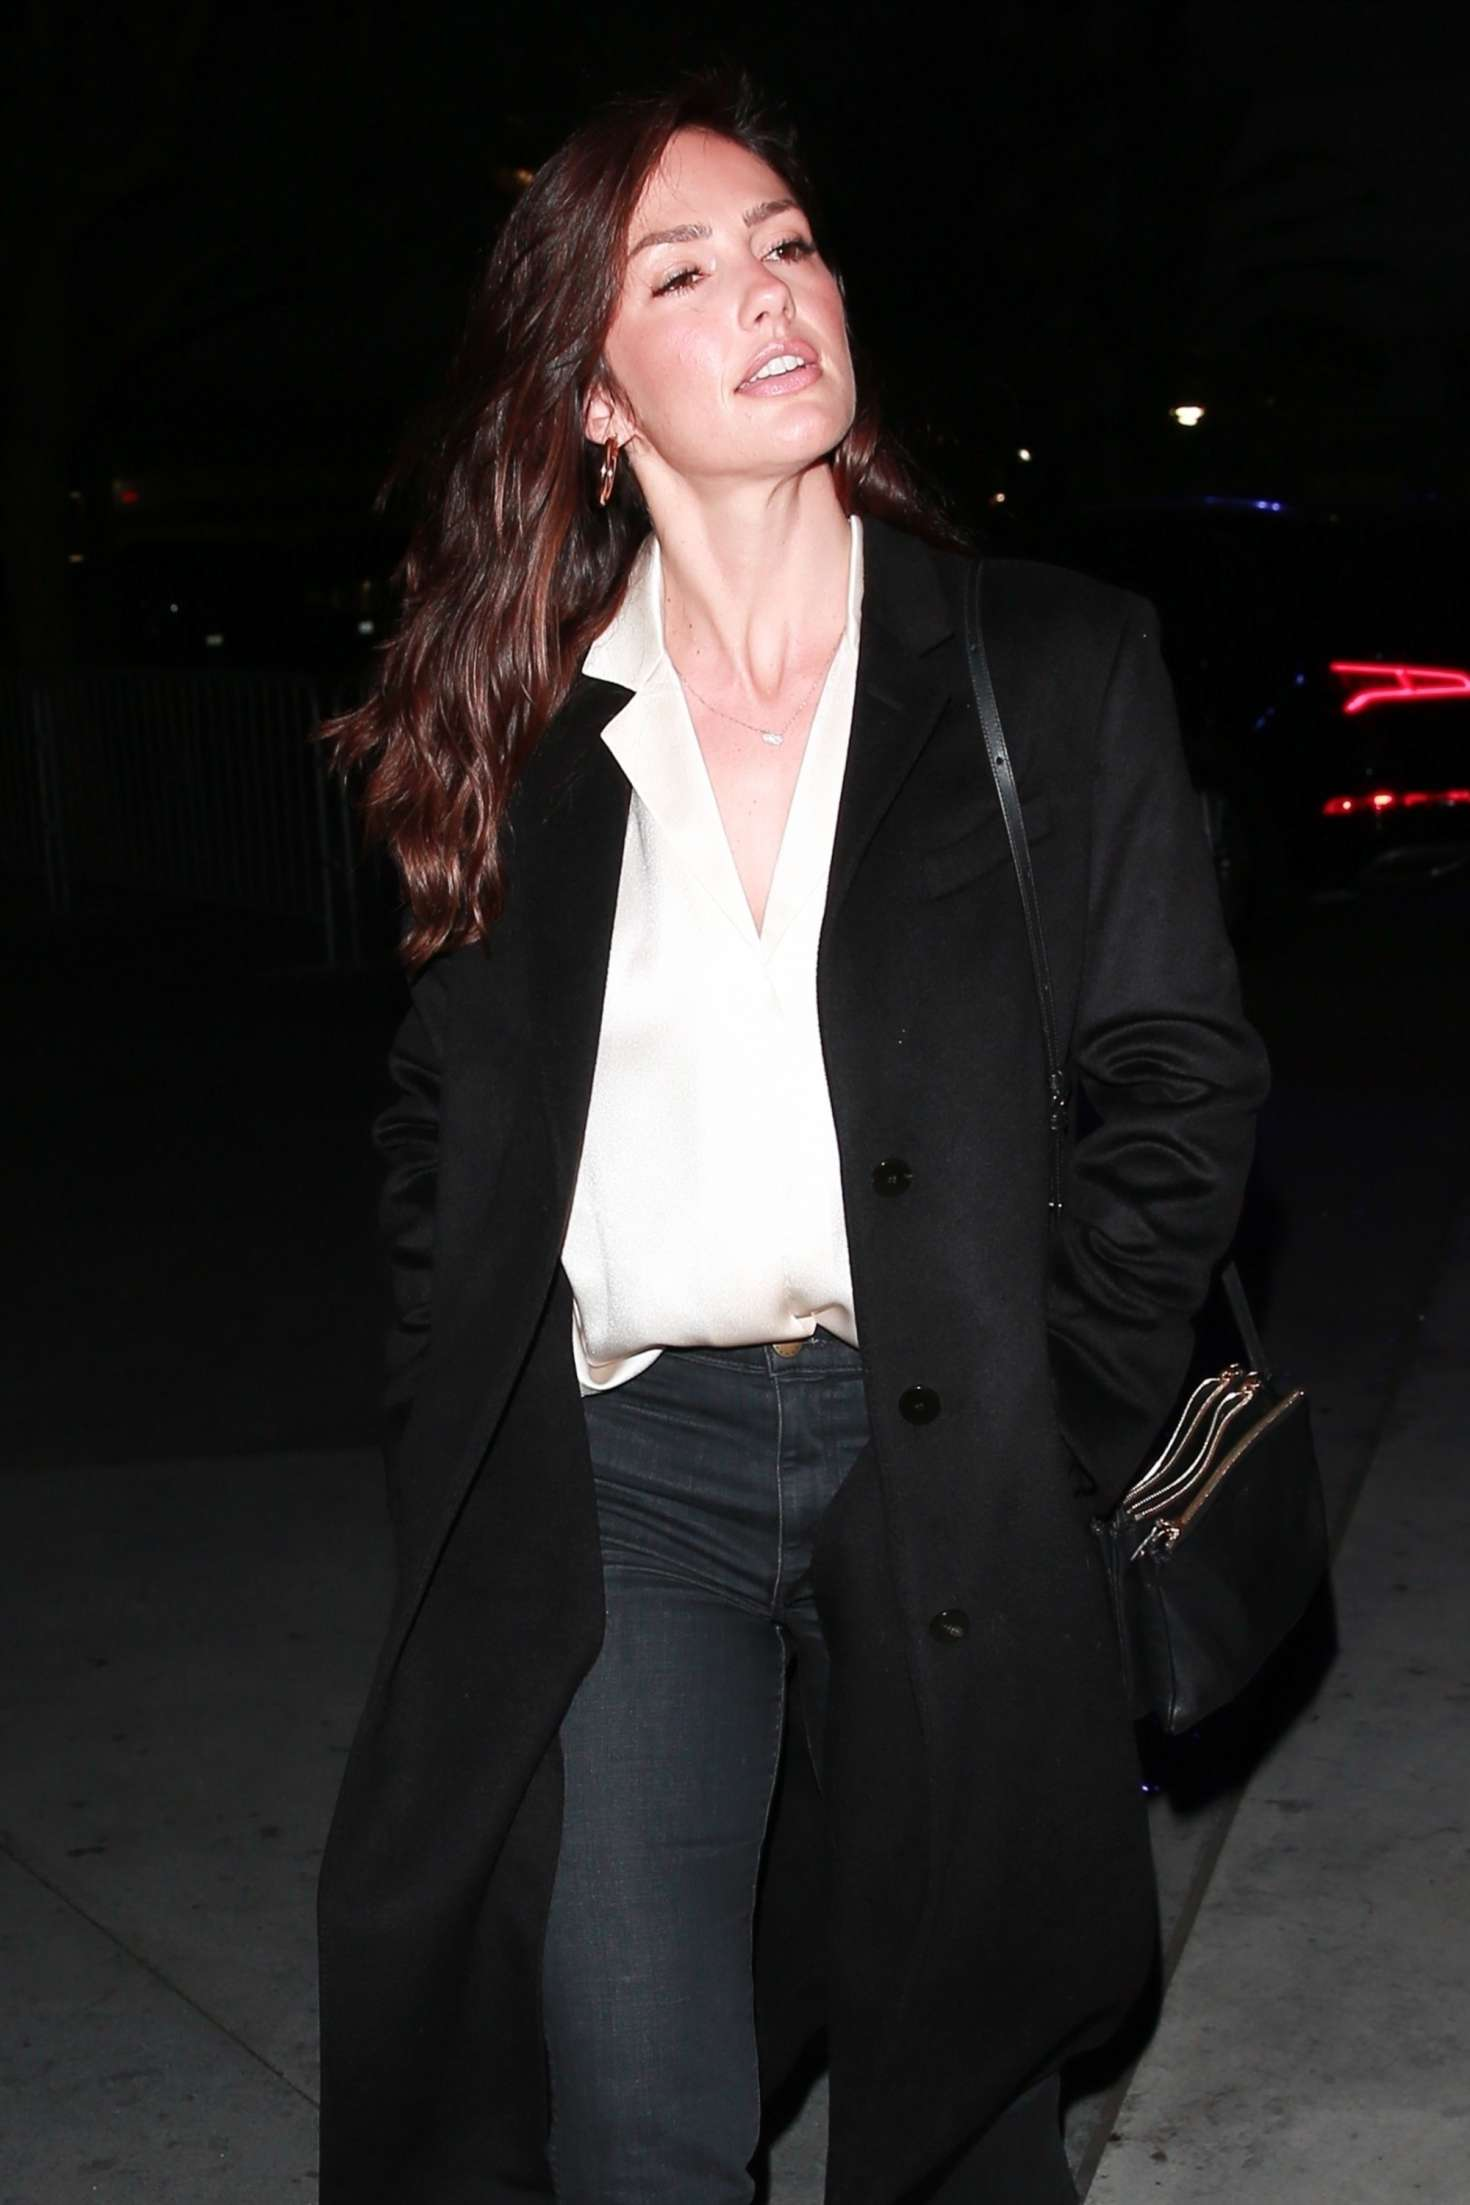 Minka Kelly - Heading to the Elton John Concert at the Staples Center in LA